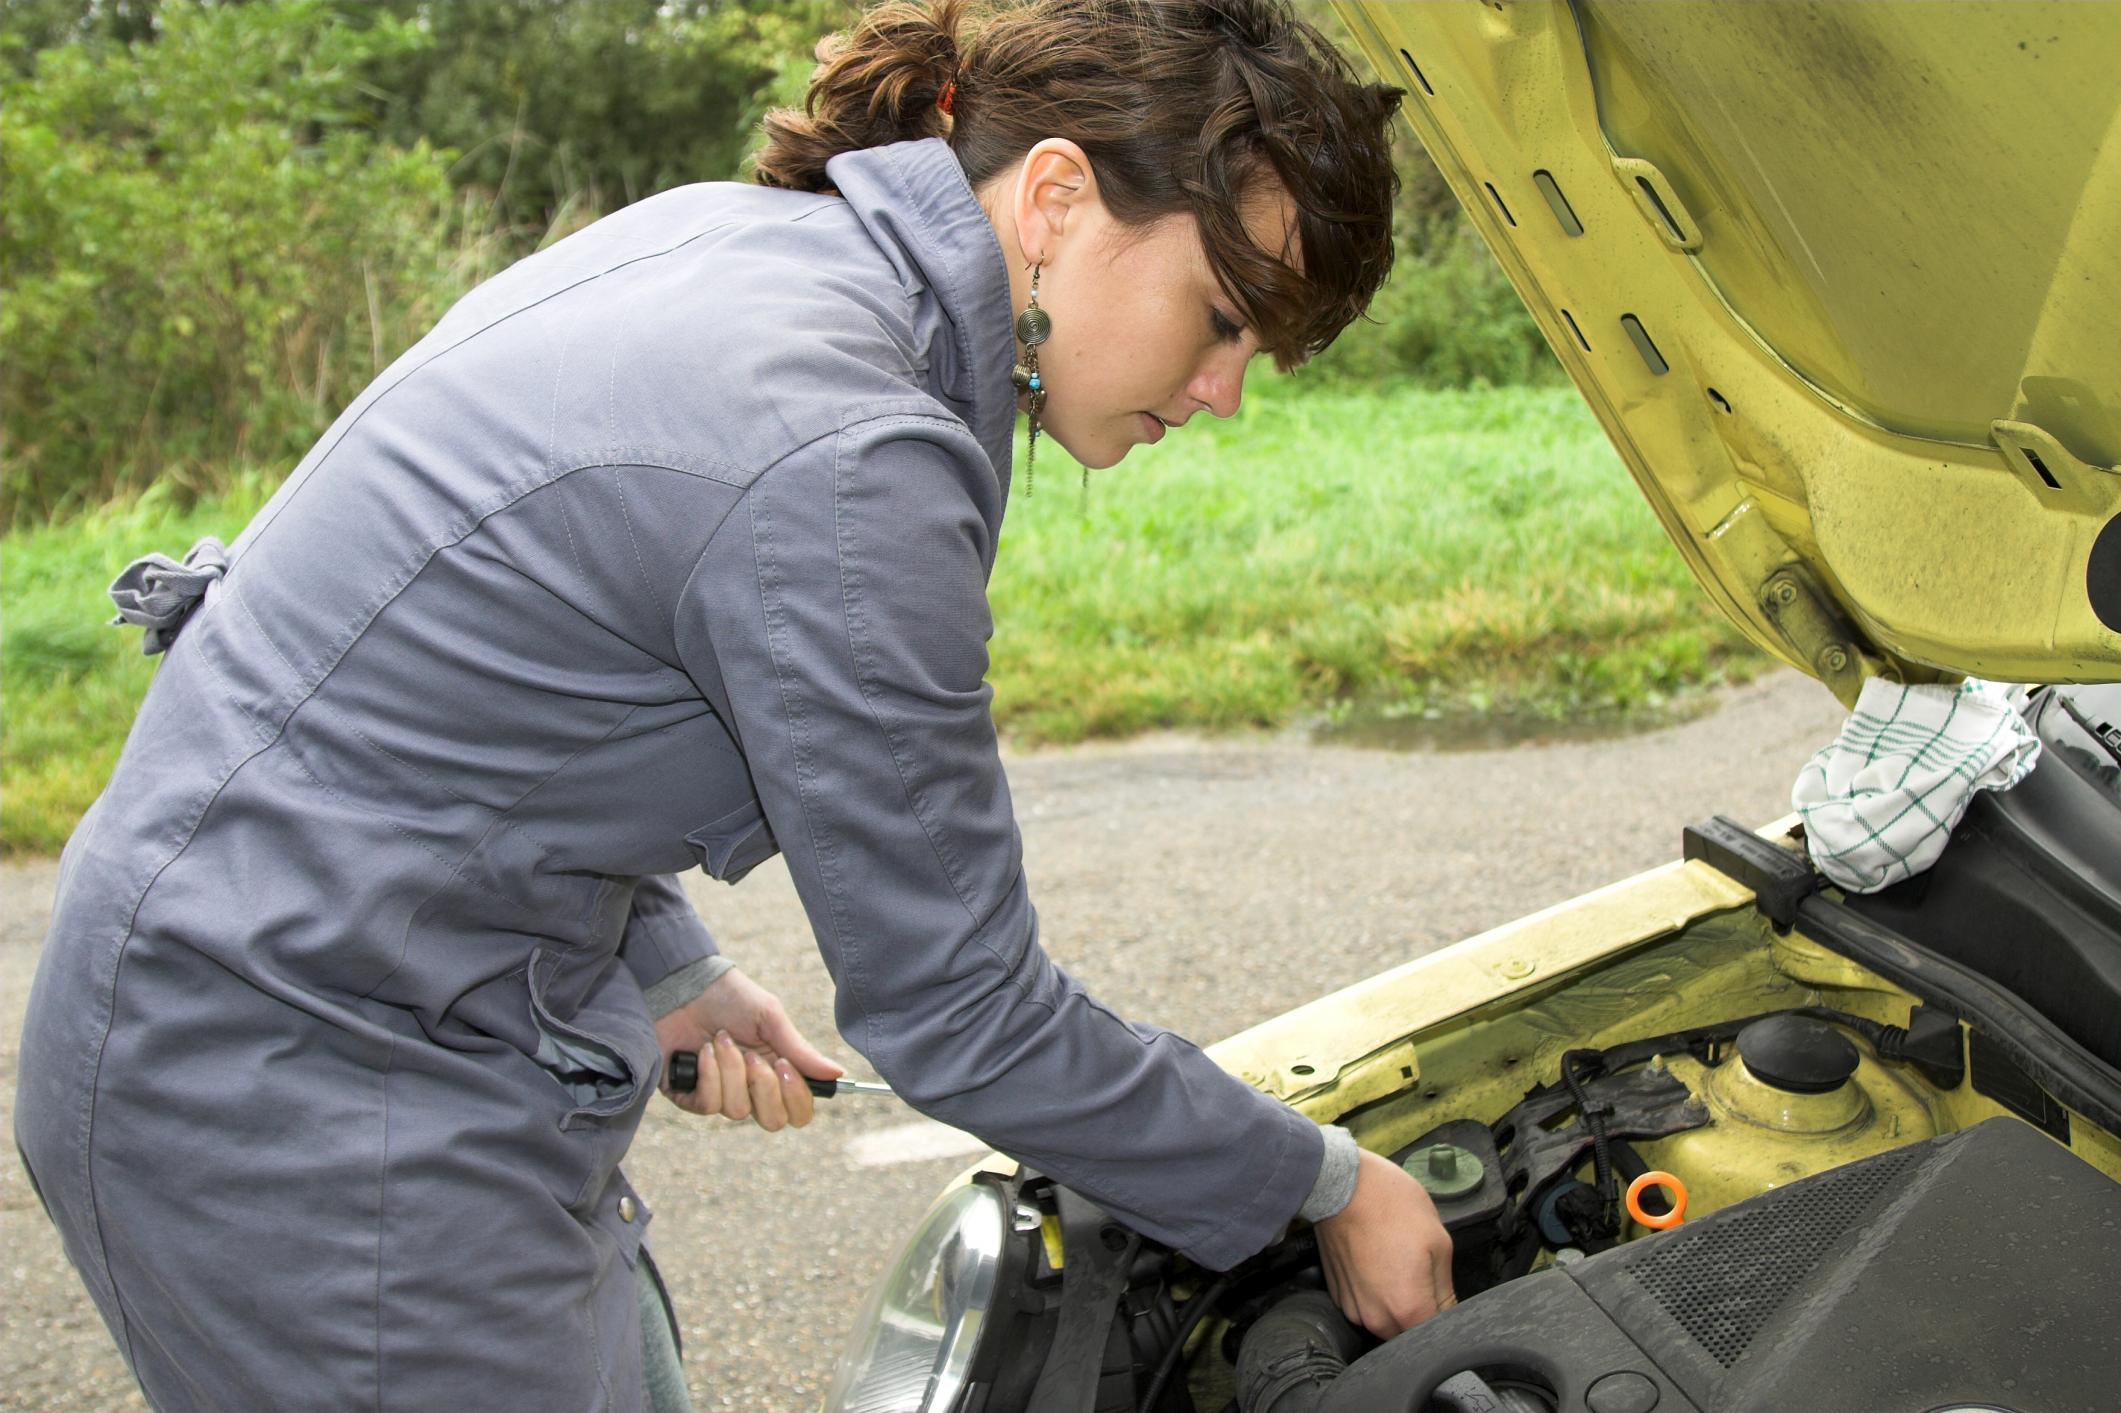 This is a picture of a roadside assistance.